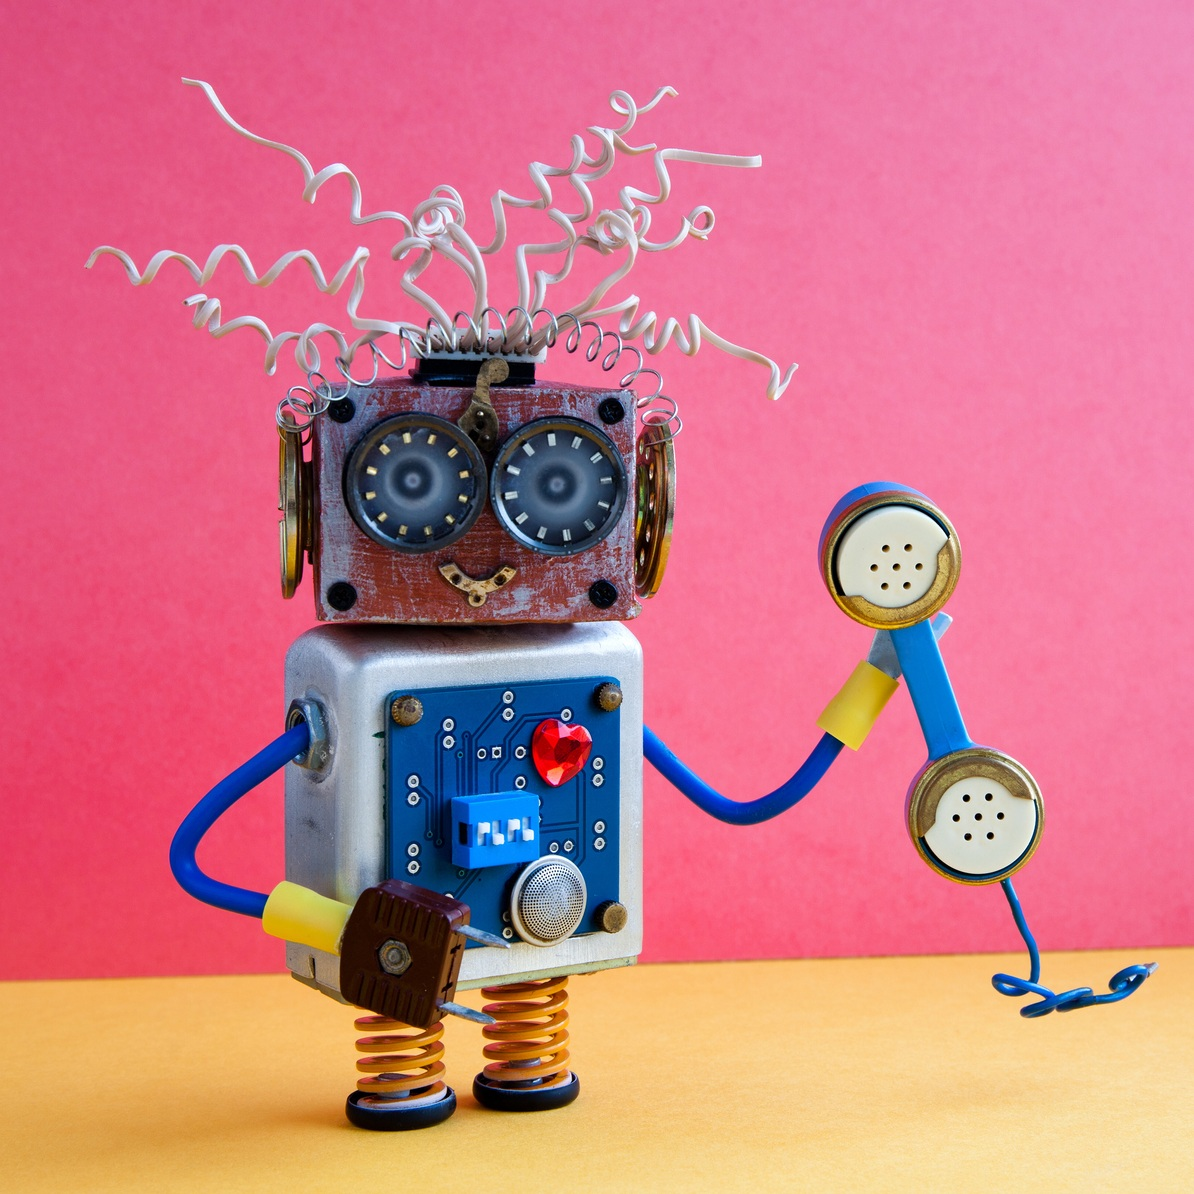 service bot - photo by besjunior/iStock / Getty Images